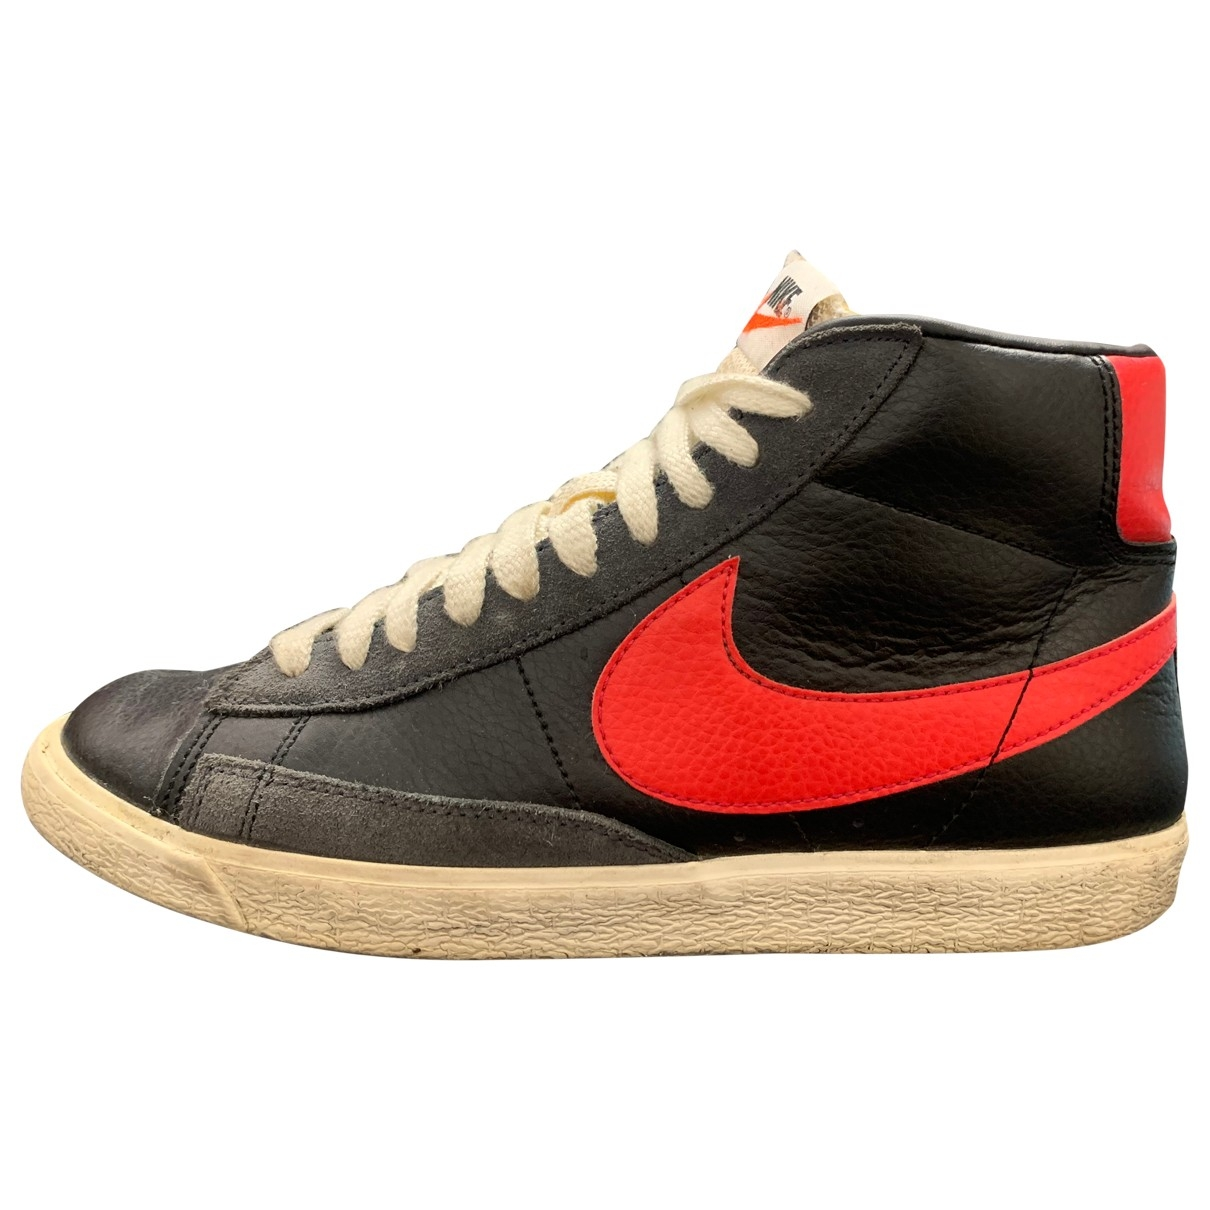 Nike Blazer Black Leather Trainers for Women 40 EU